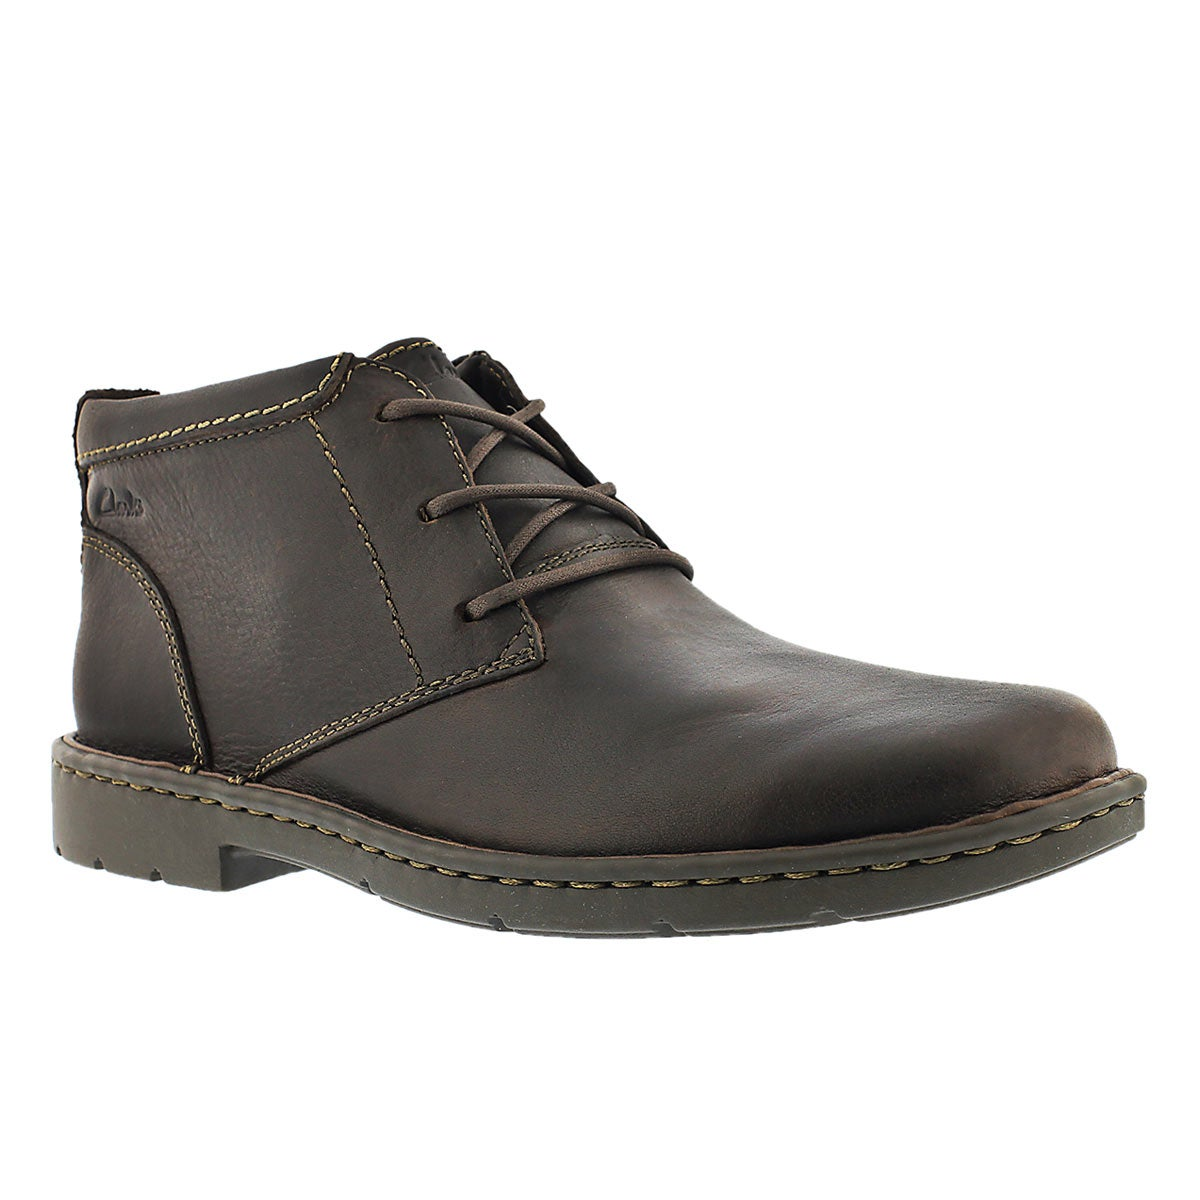 Mns Stratton Limit brn ankle boot - wide